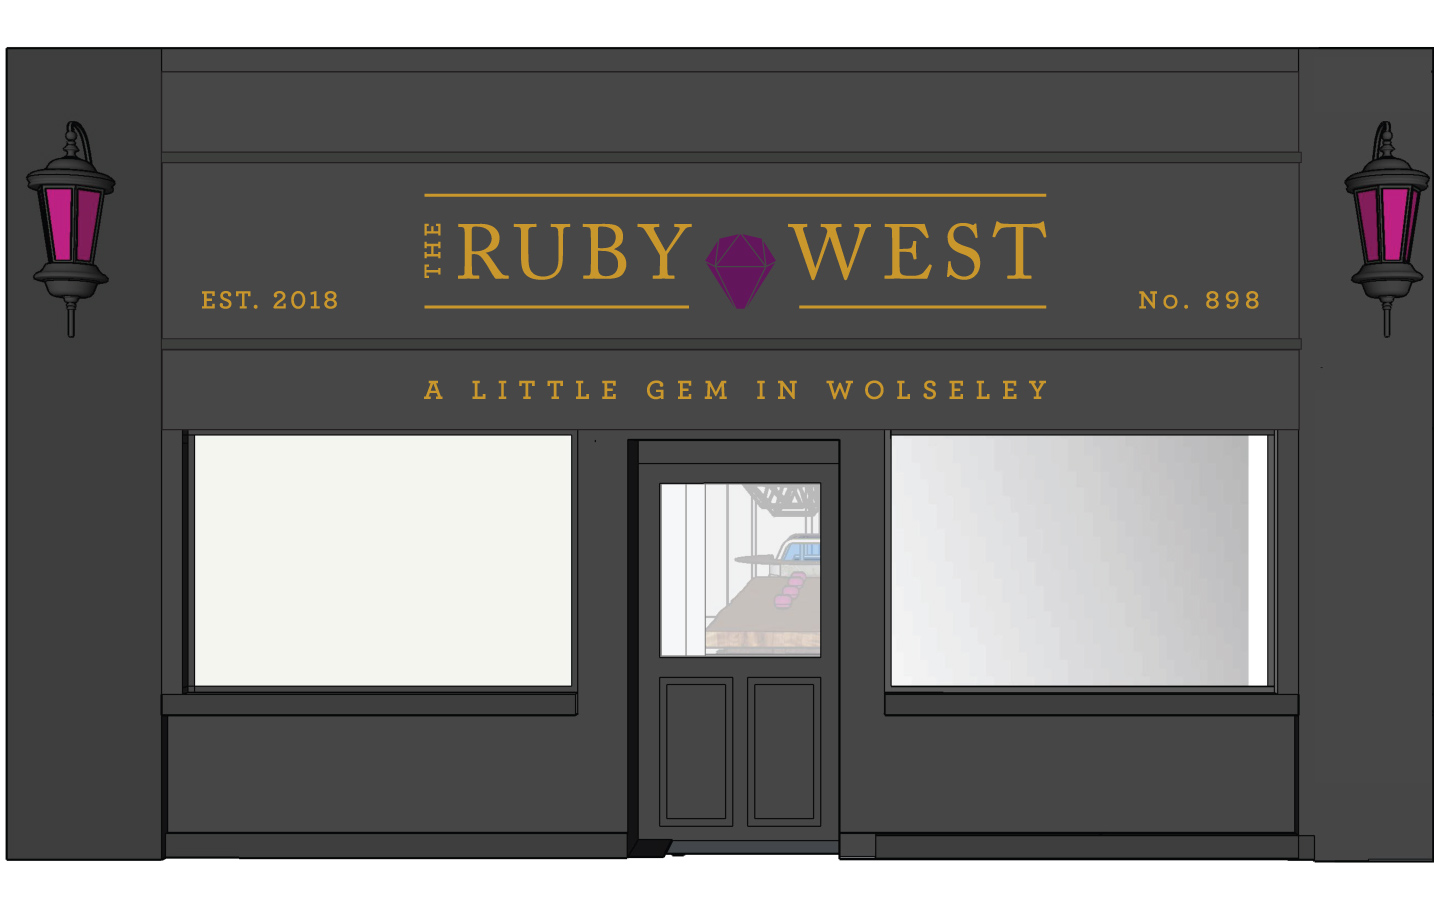 Ruby West Wolseley restaurant exterior sign and facade mockup